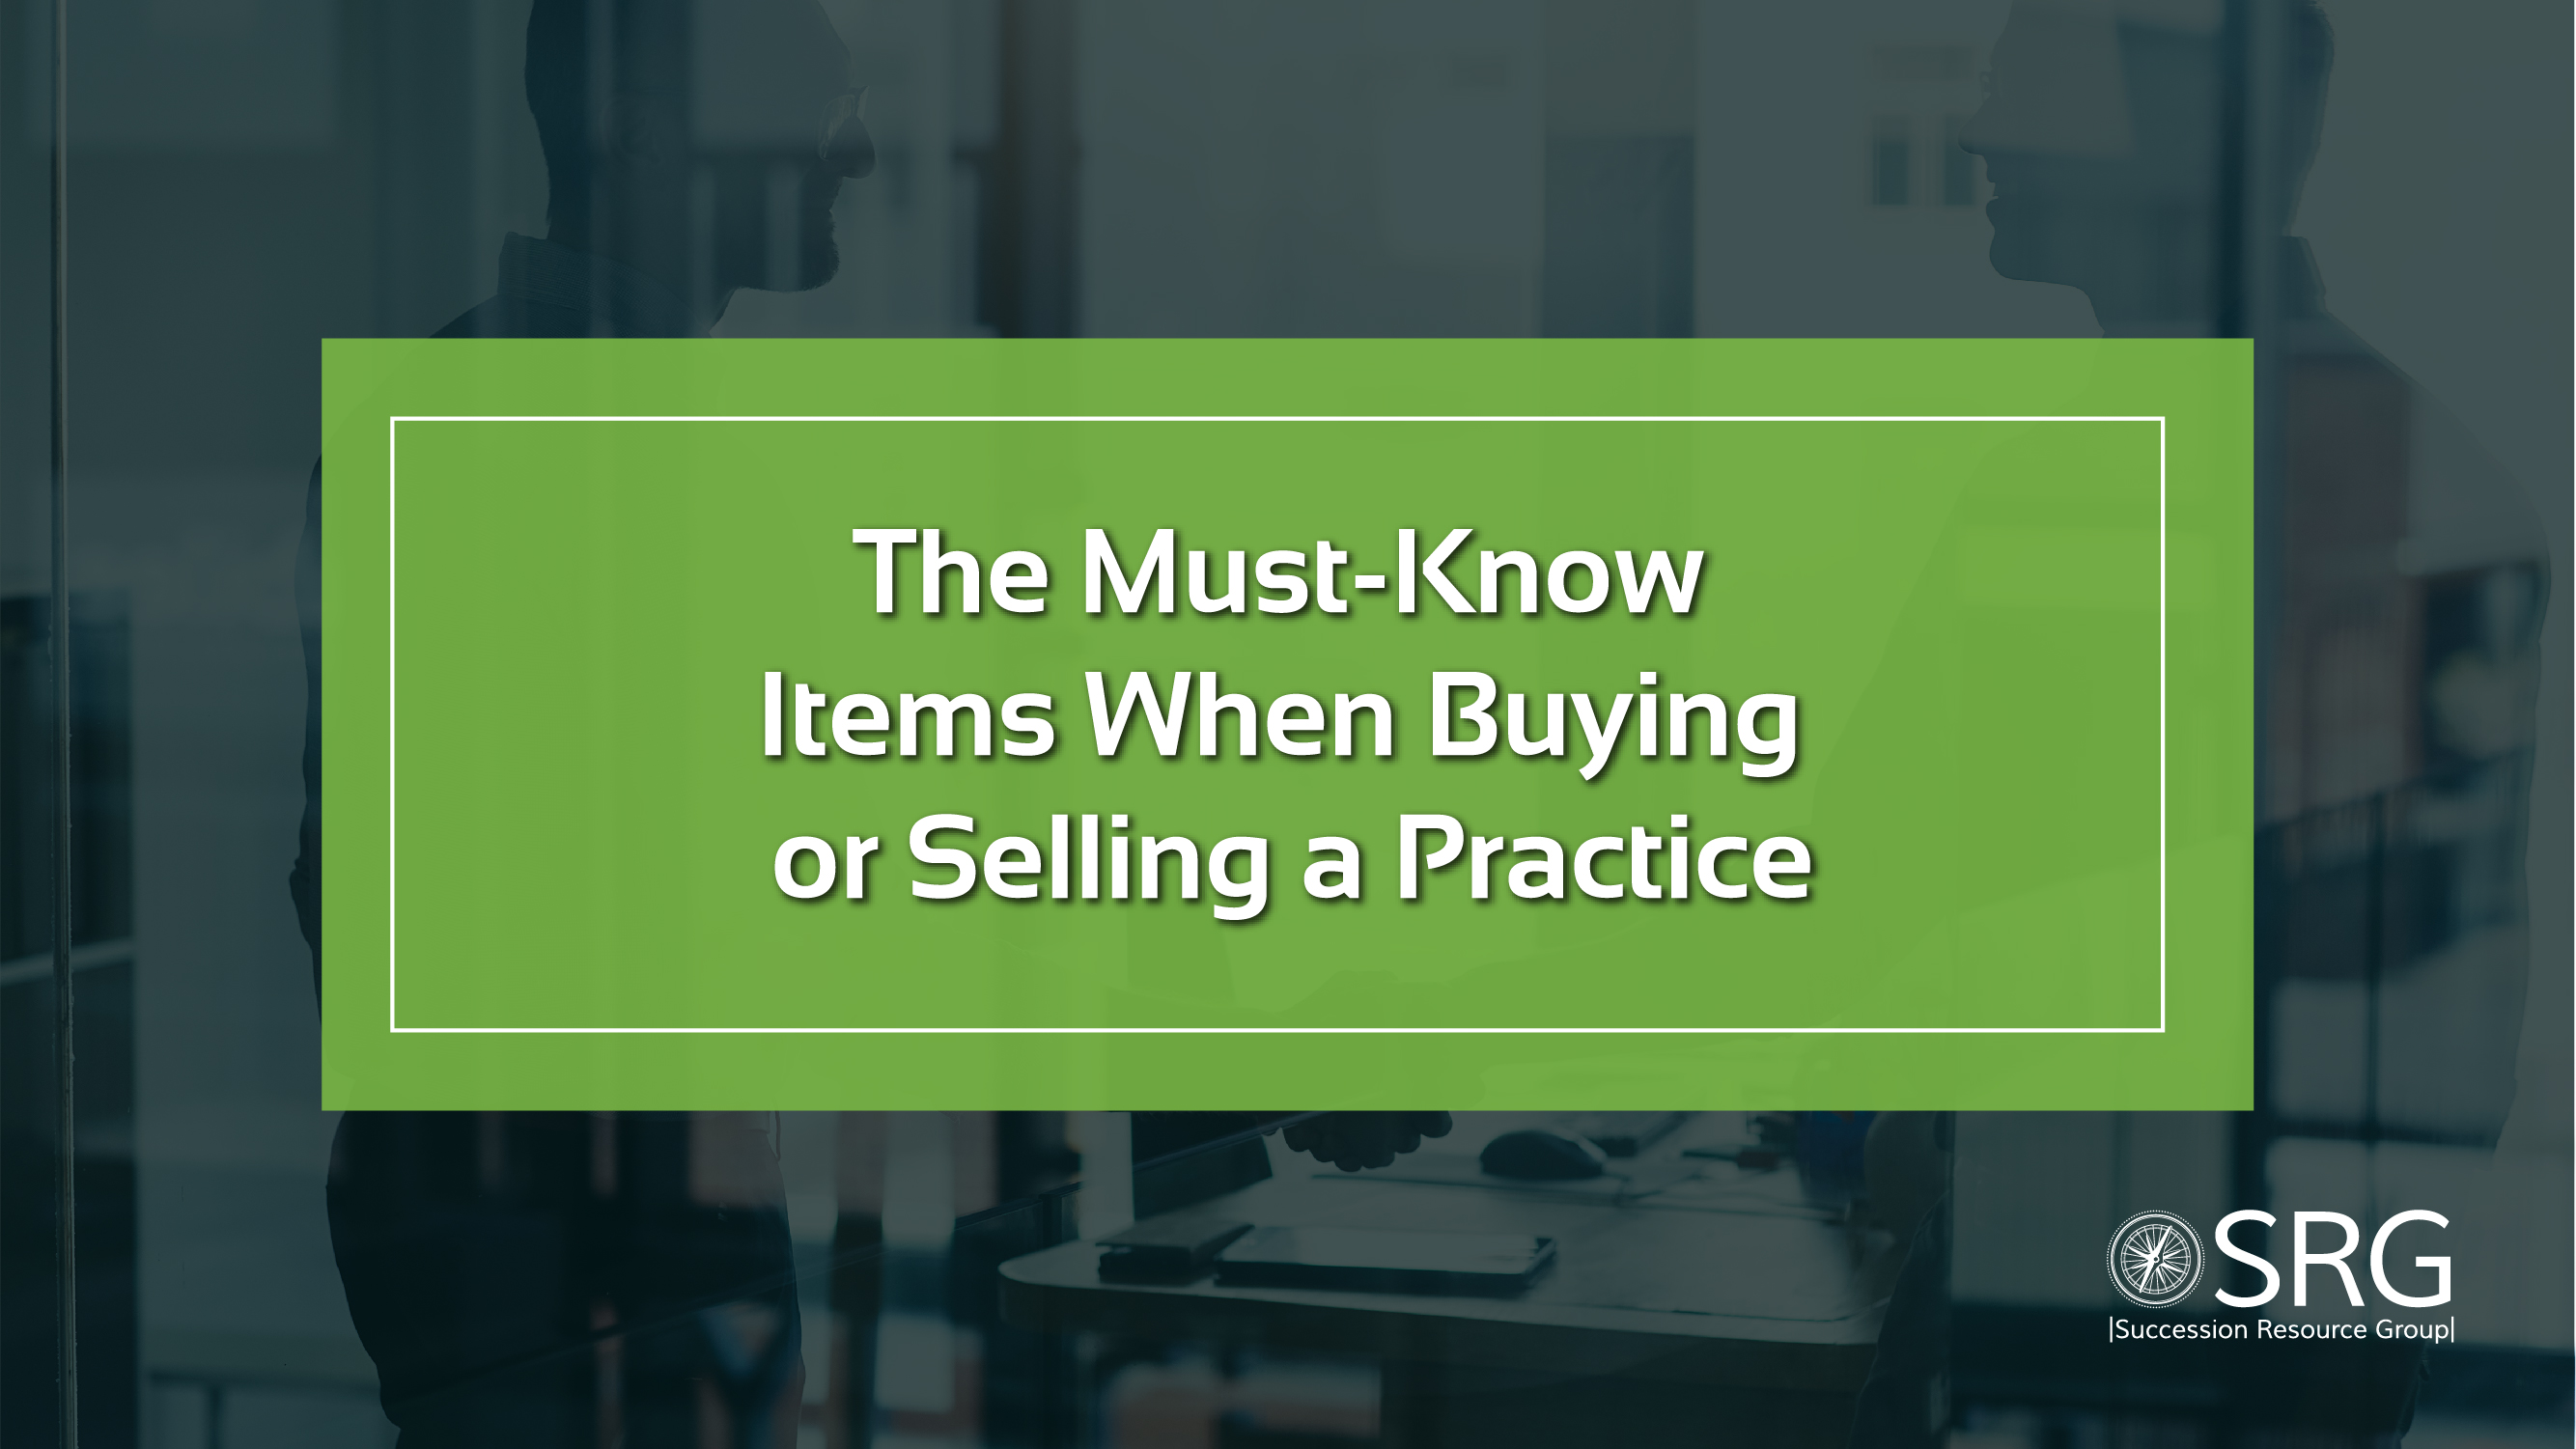 The Must-Know Items When Buying or Selling a Practice_YouTube Video-1